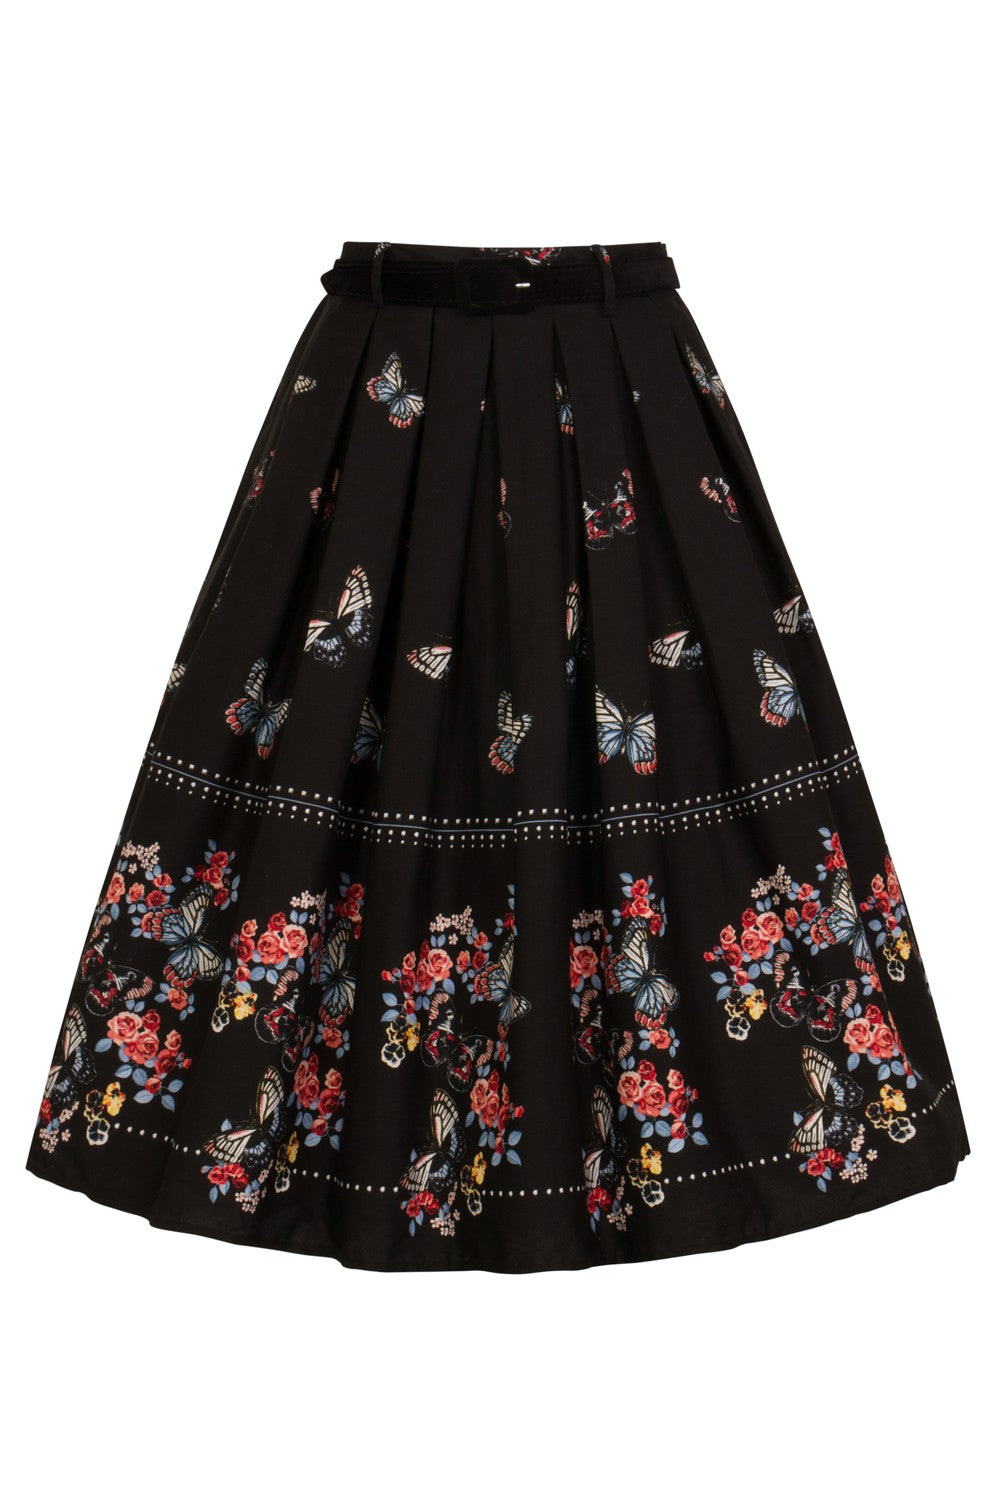 Hell Bunny Laeticia 50s Skirt